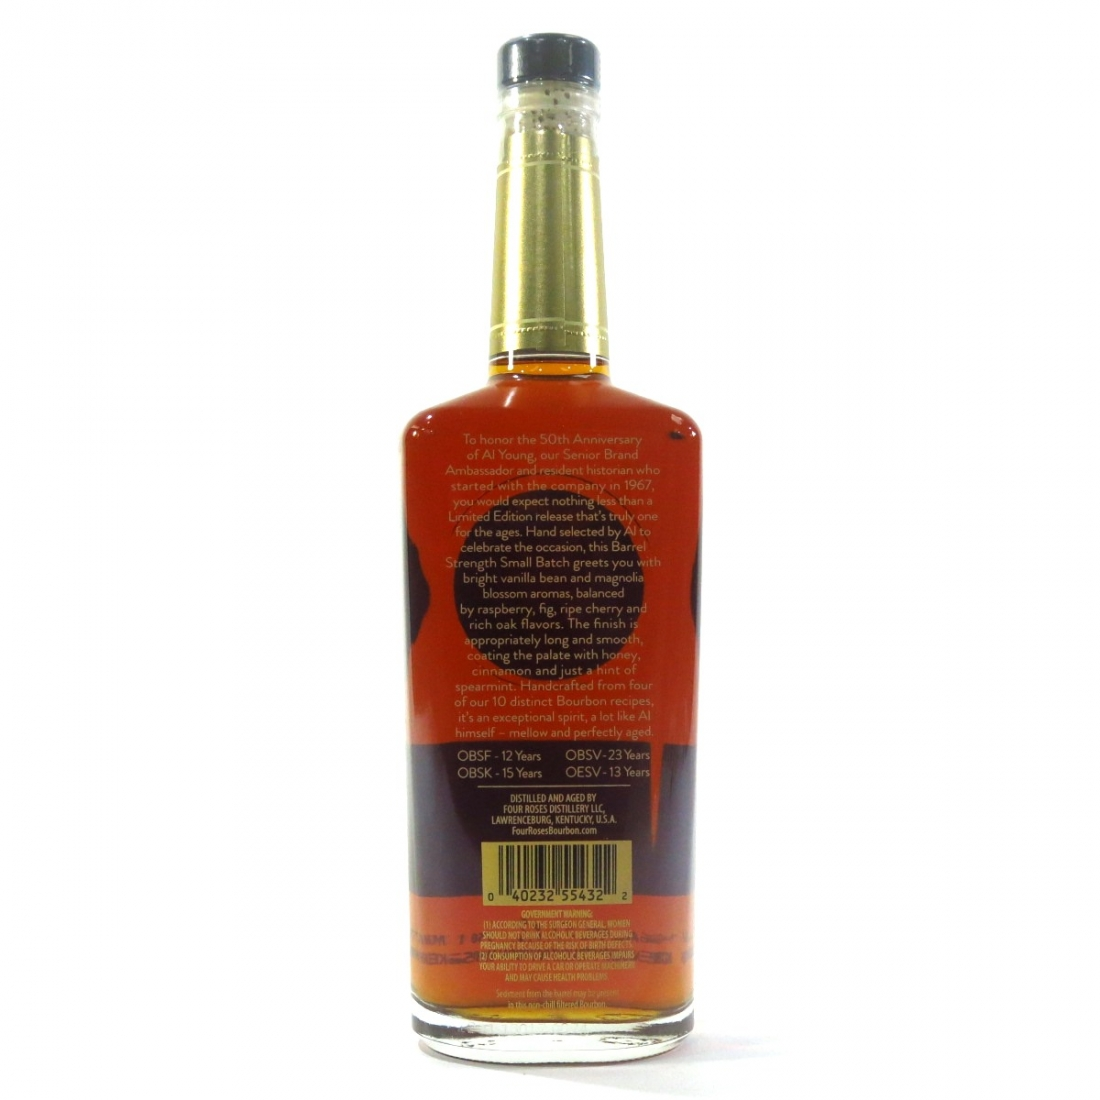 Four Roses Small Batch 2017 Limited Edition / Al Young 50th Anniversary